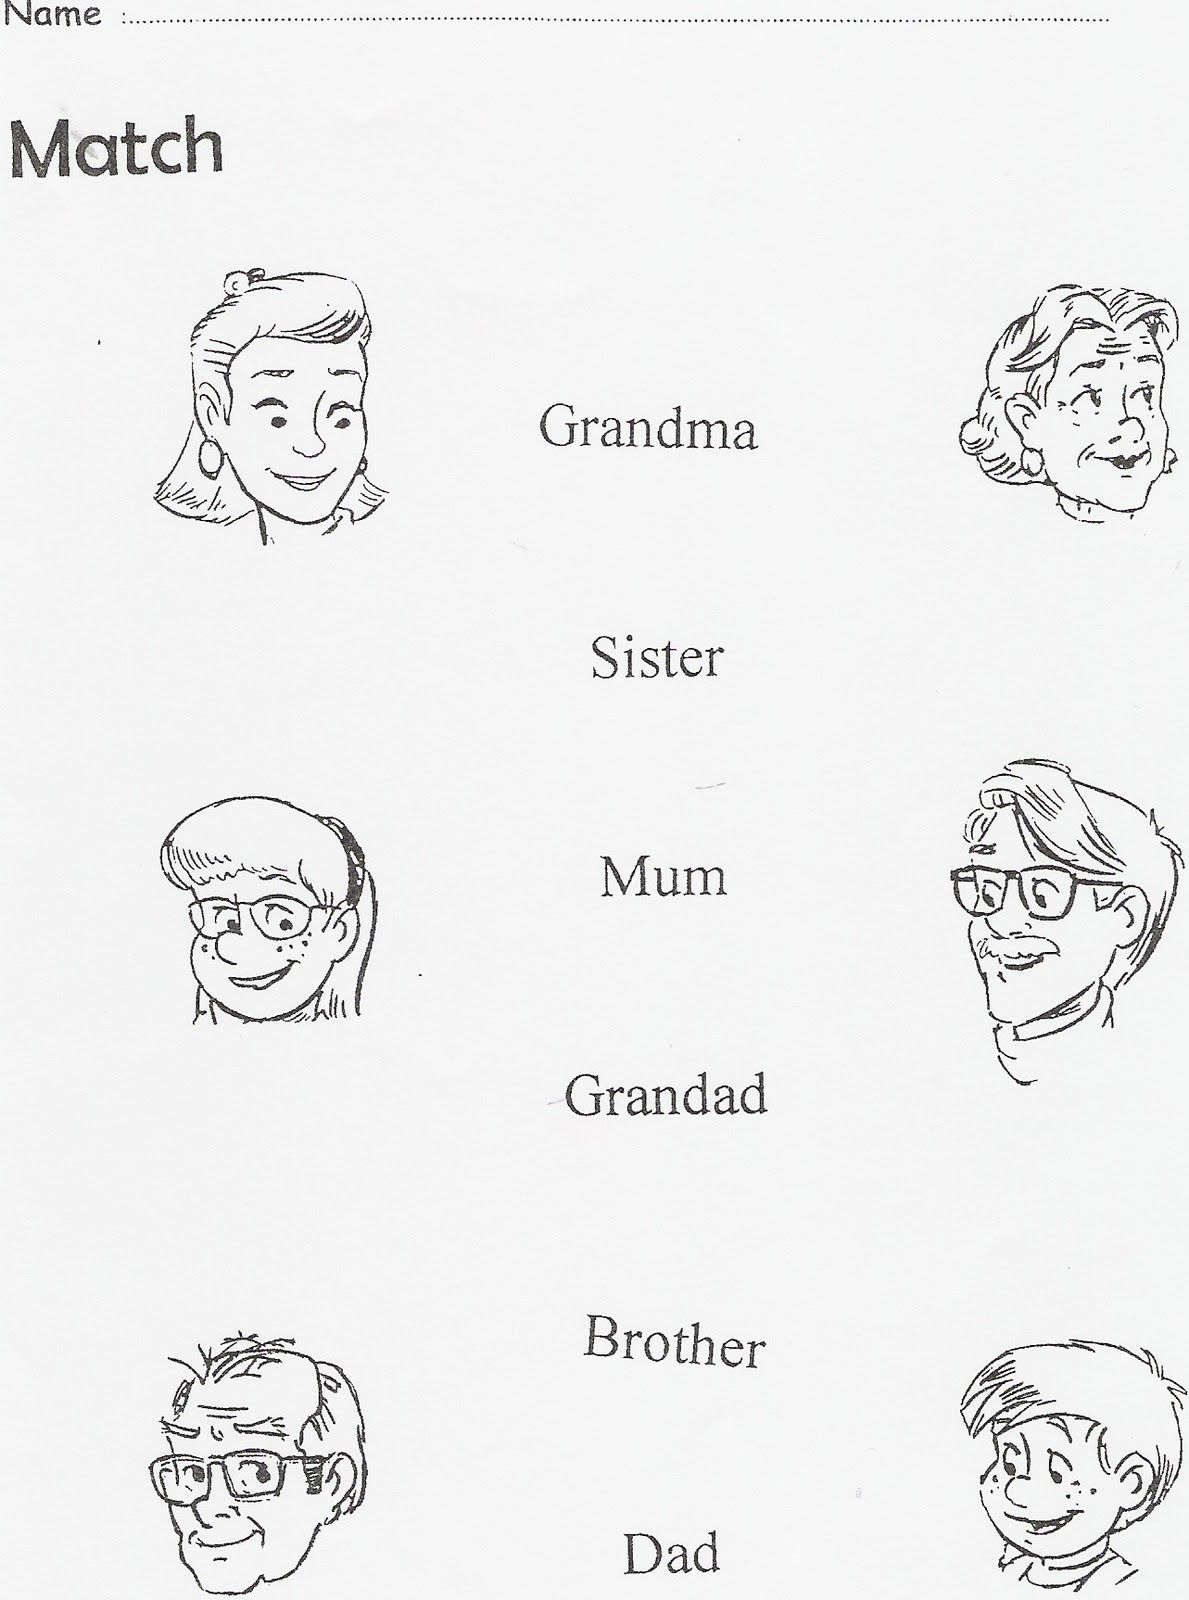 Worksheet La Familia Worksheets Worksheet Fun Worksheet